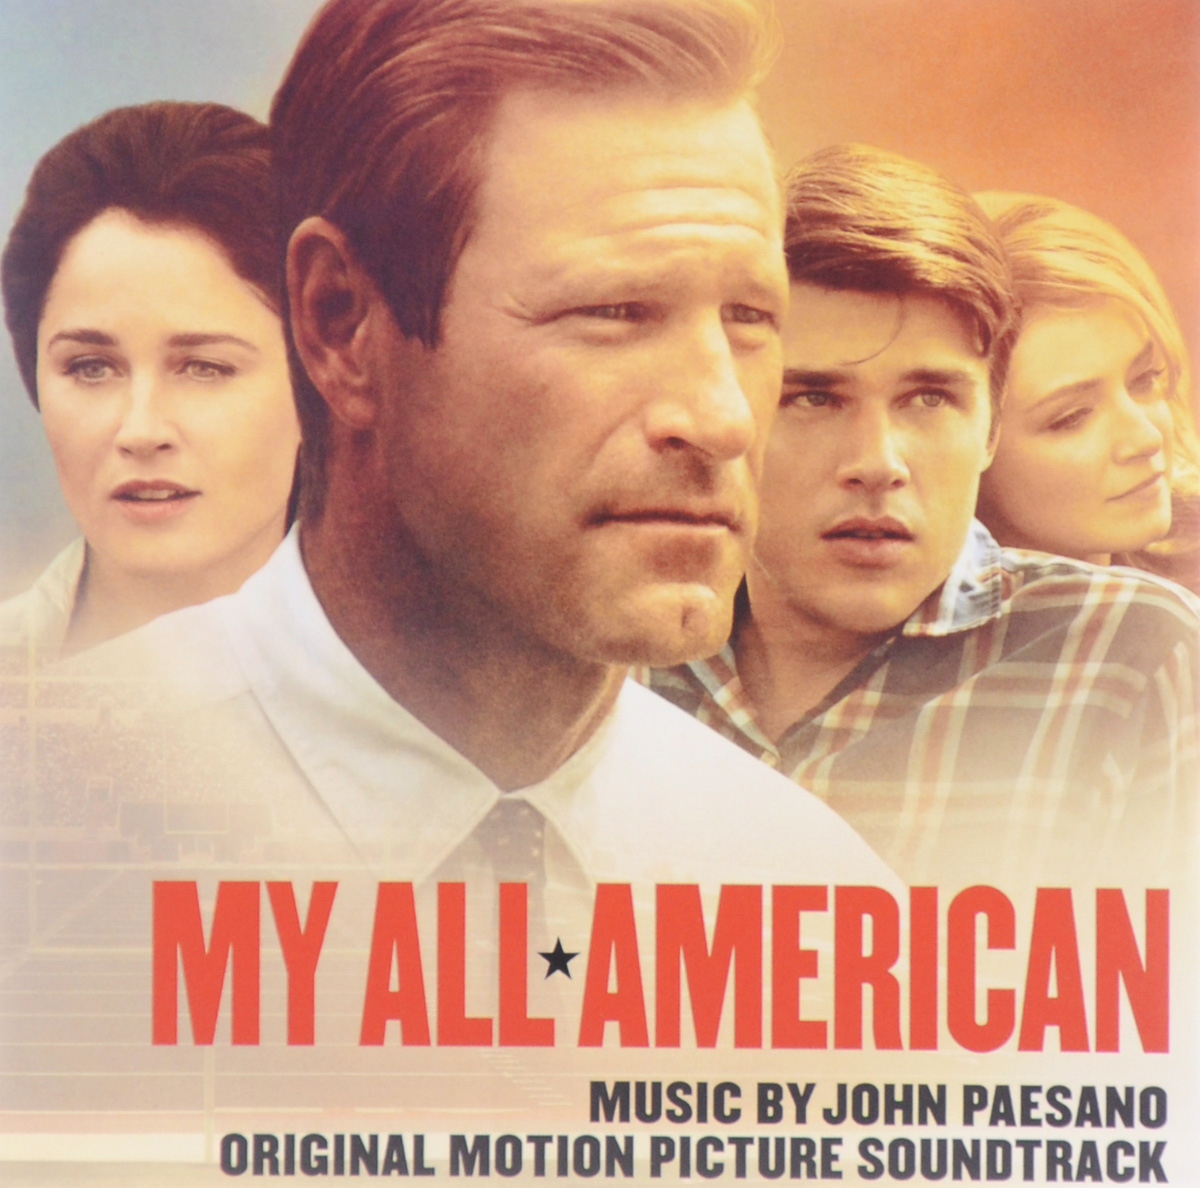 My All American. Original Motion Picture Soundtrask. Music By John Paesano